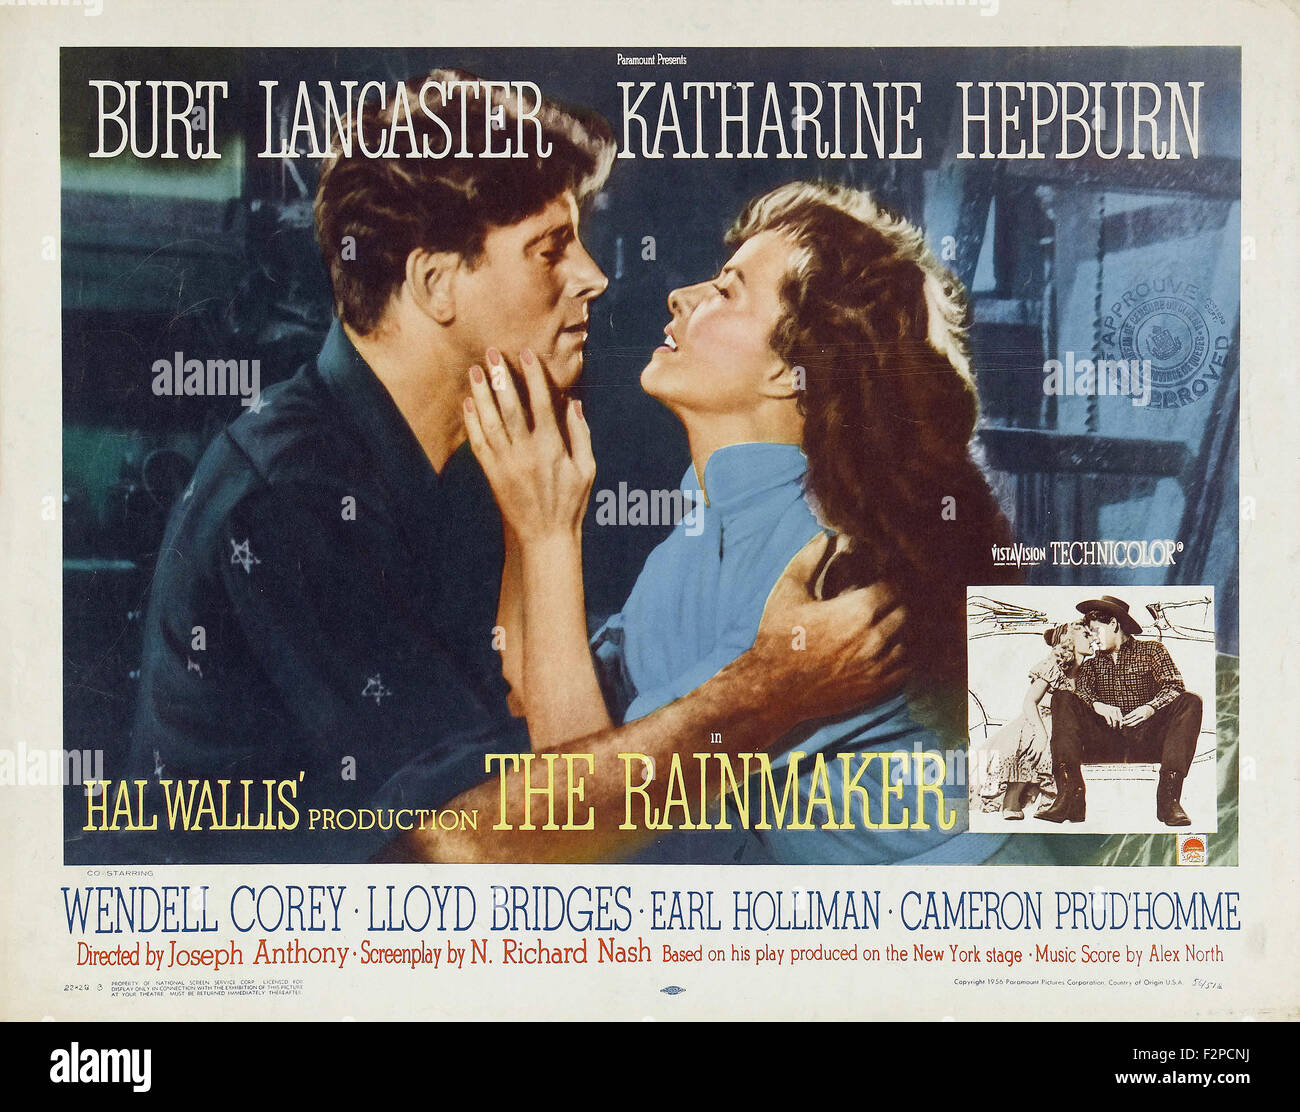 Rainmaker, The (1956) - Movie Poster - Stock Image